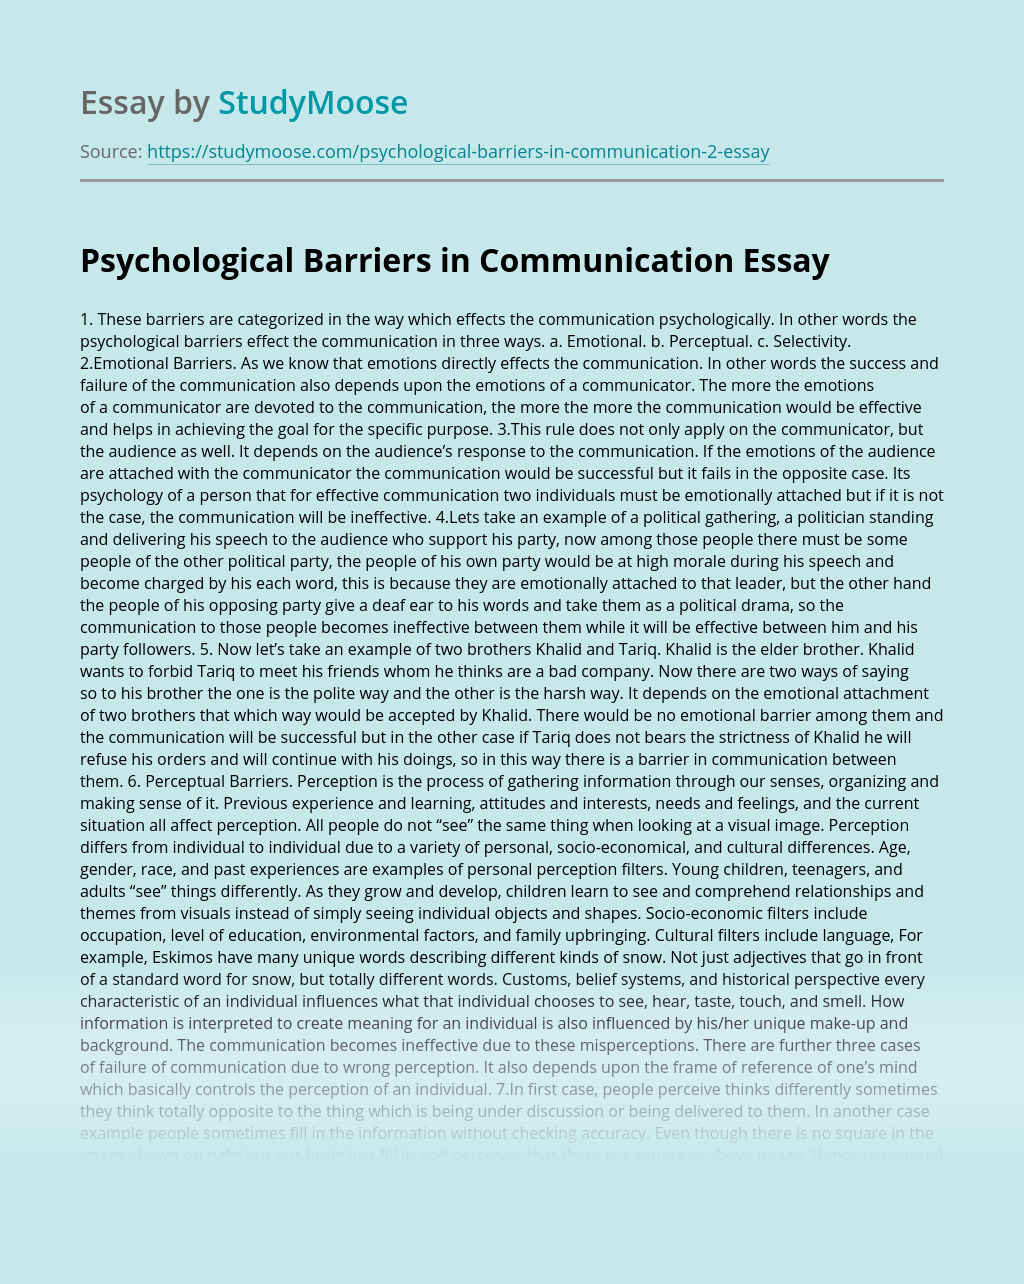 Psychological Barriers in Communication